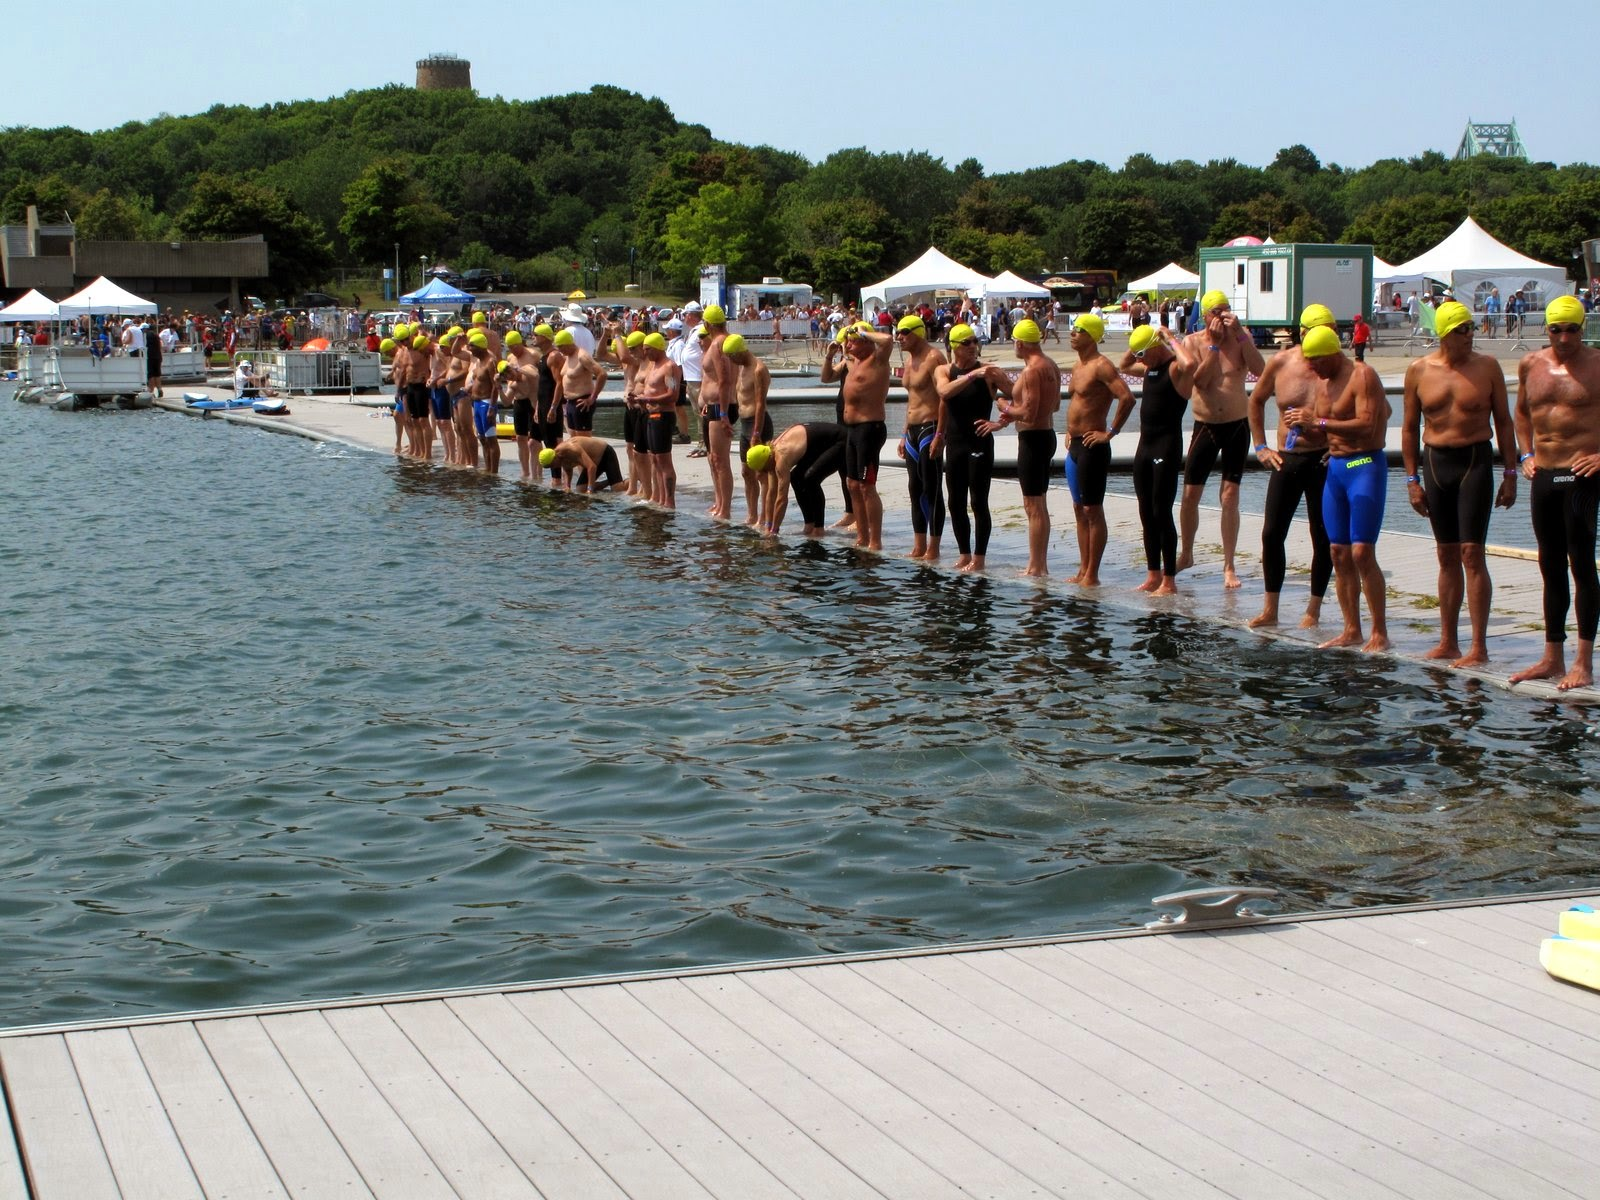 The 3km open water start for the 60 - 64 age gropu.  Steve Presescott is in there somewhere.  Note that some swimmers have  the full body swimsuits on (these are legal)